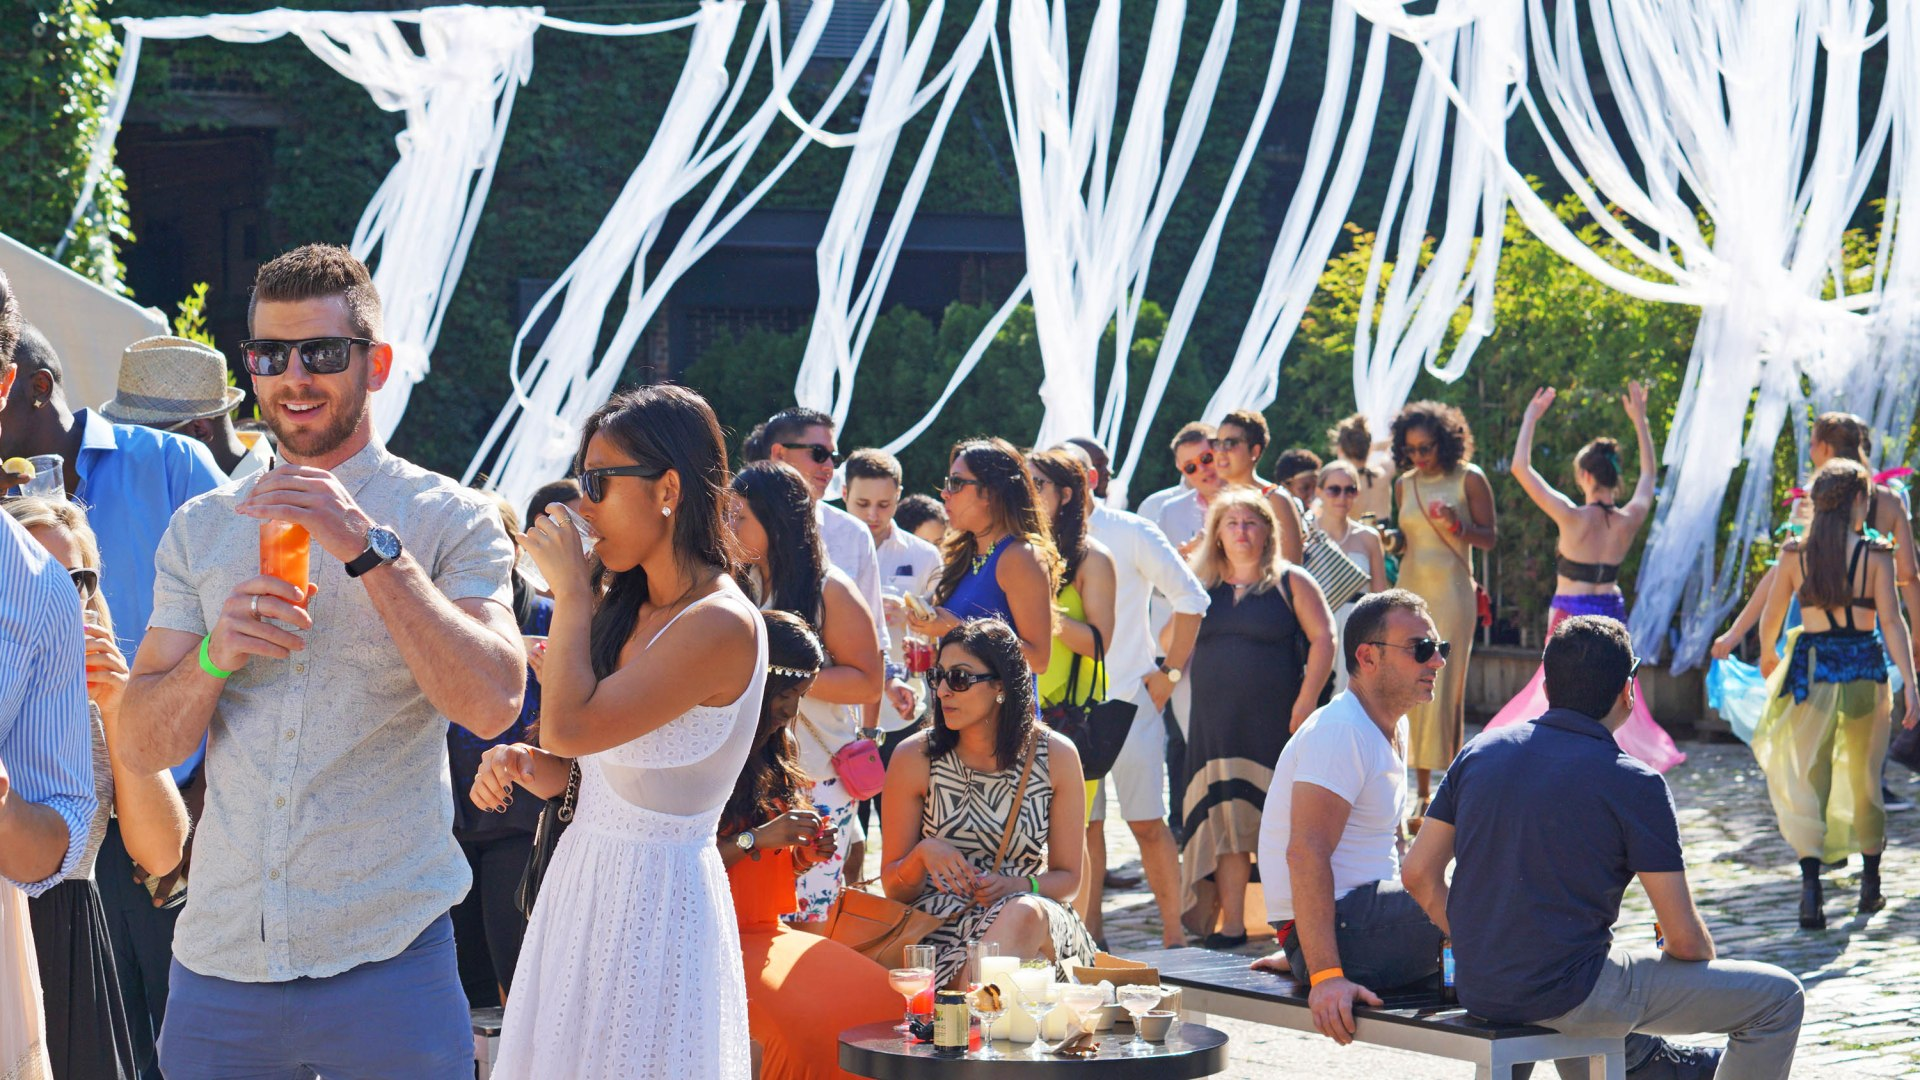 5 NYC Summer Food Festivals I'm Most Pumped For